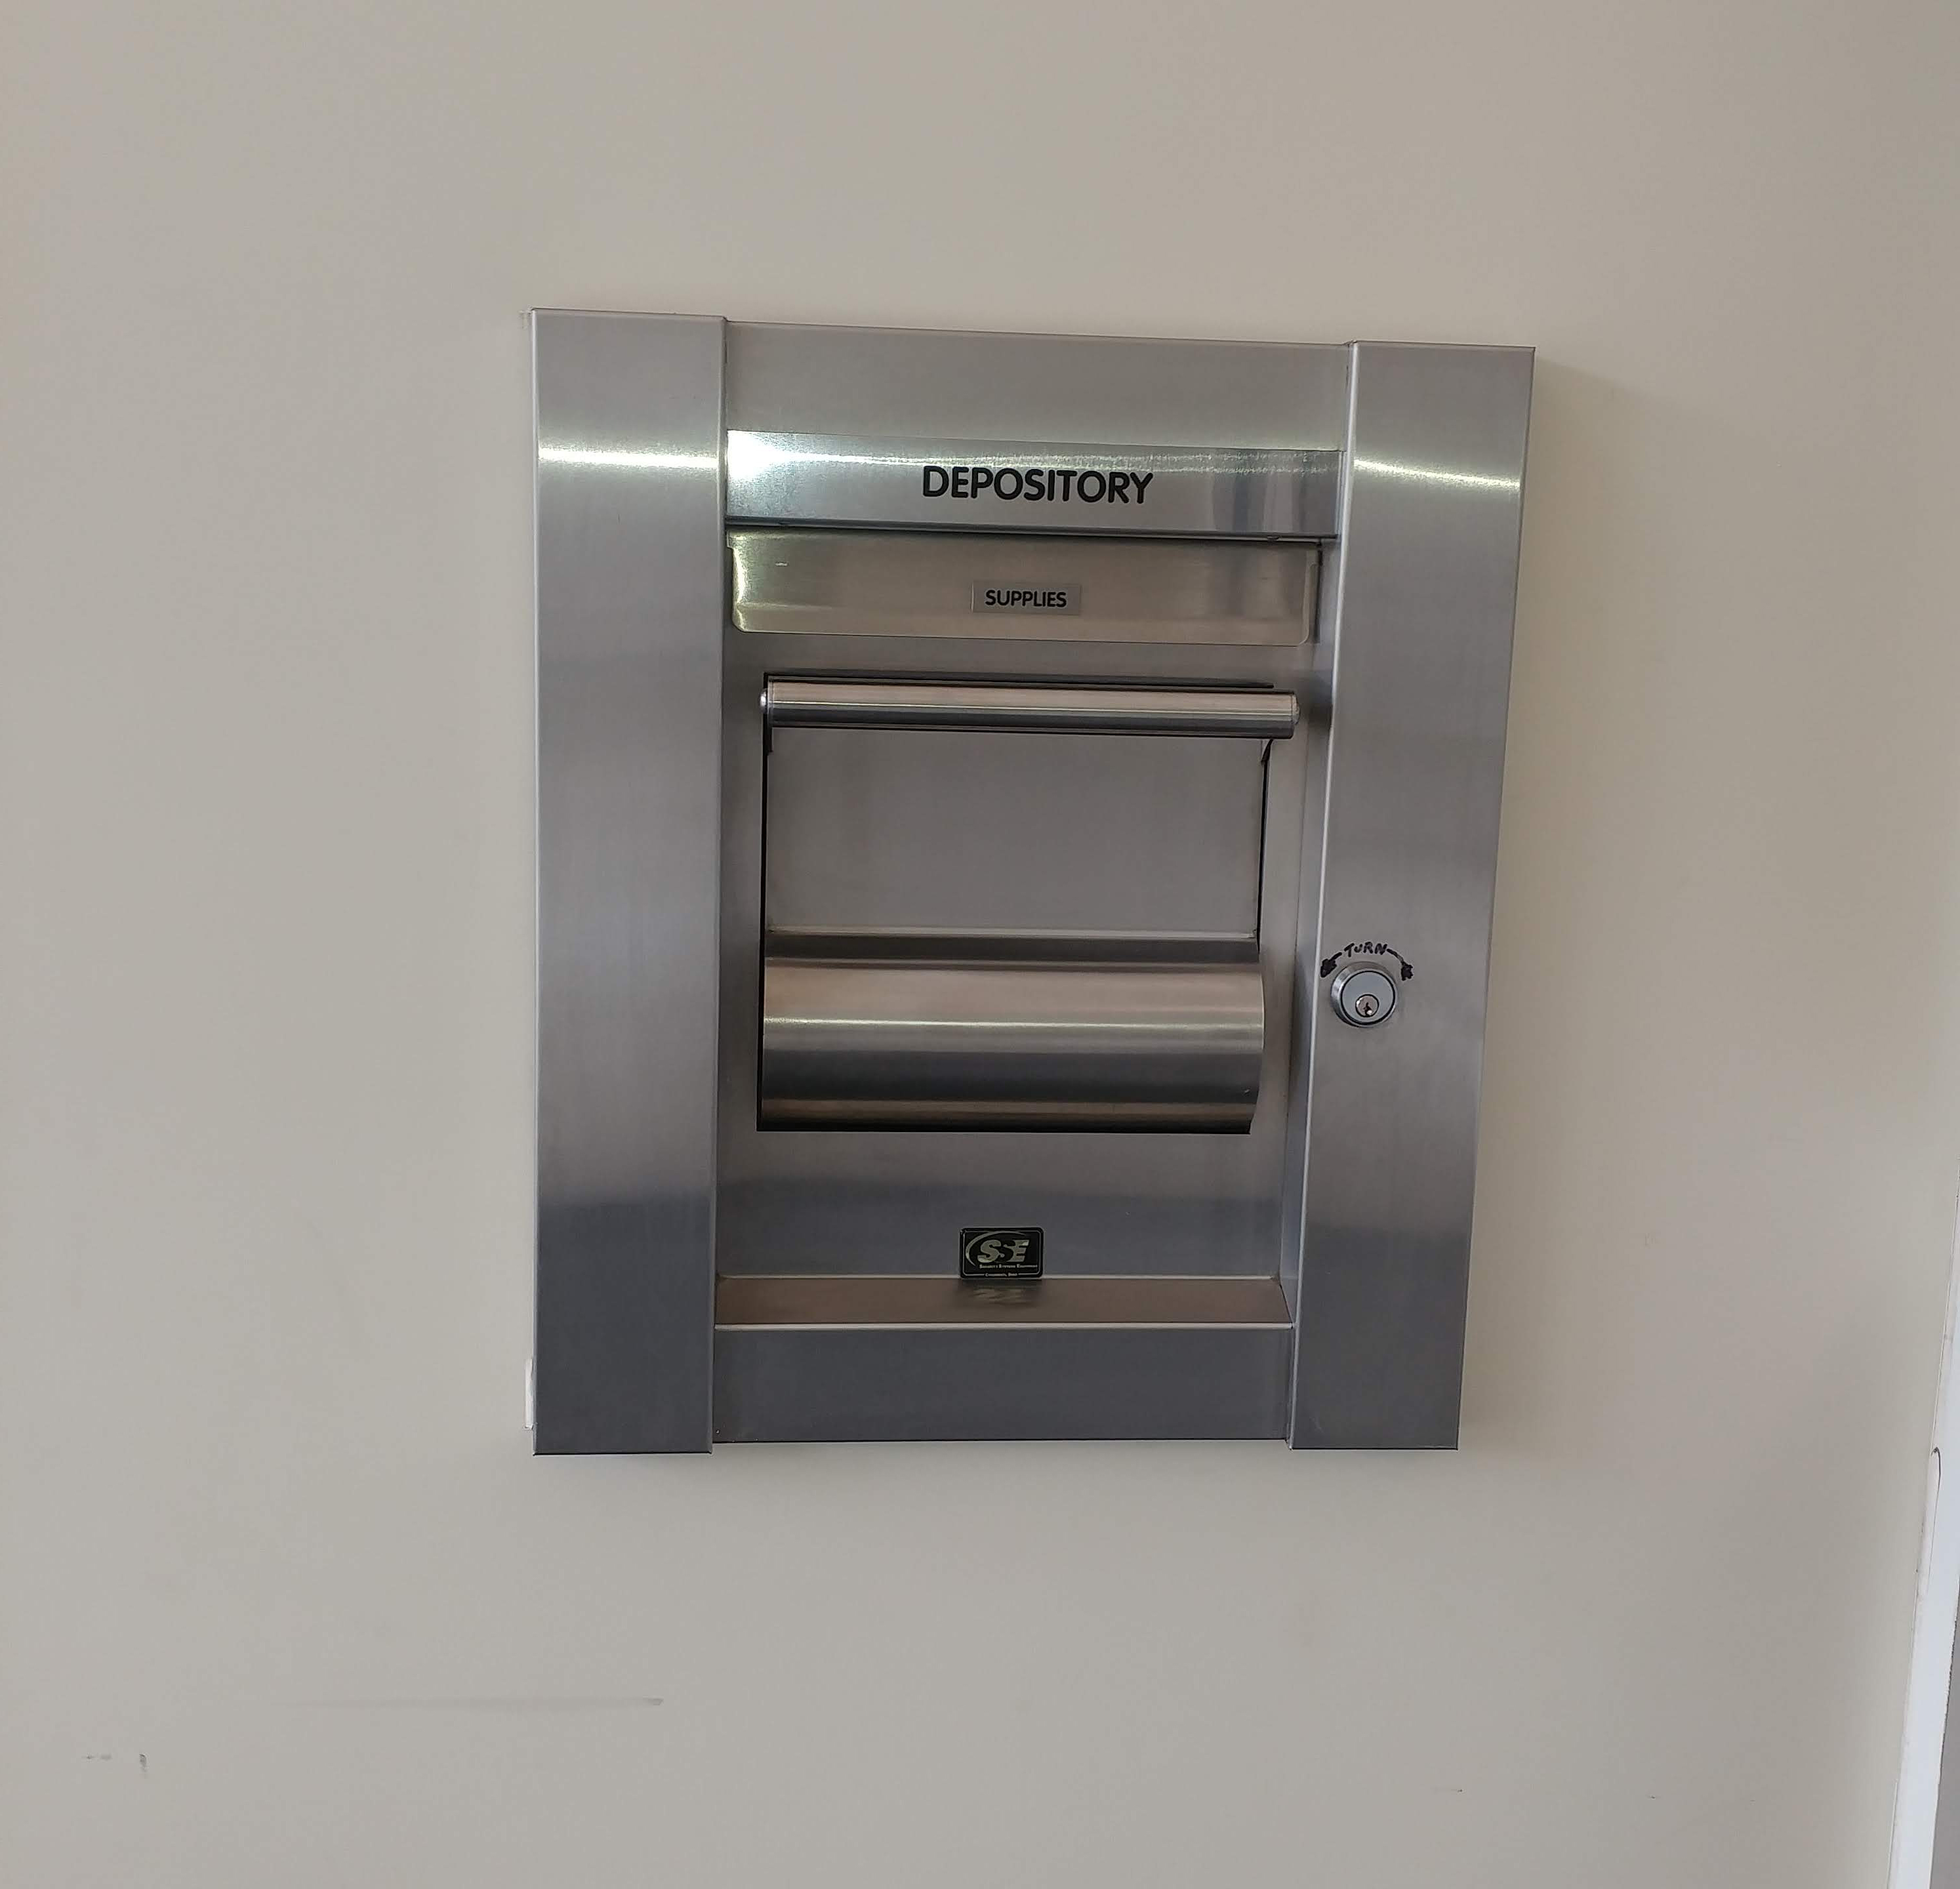 night deposit box at the gfcu north adams branch